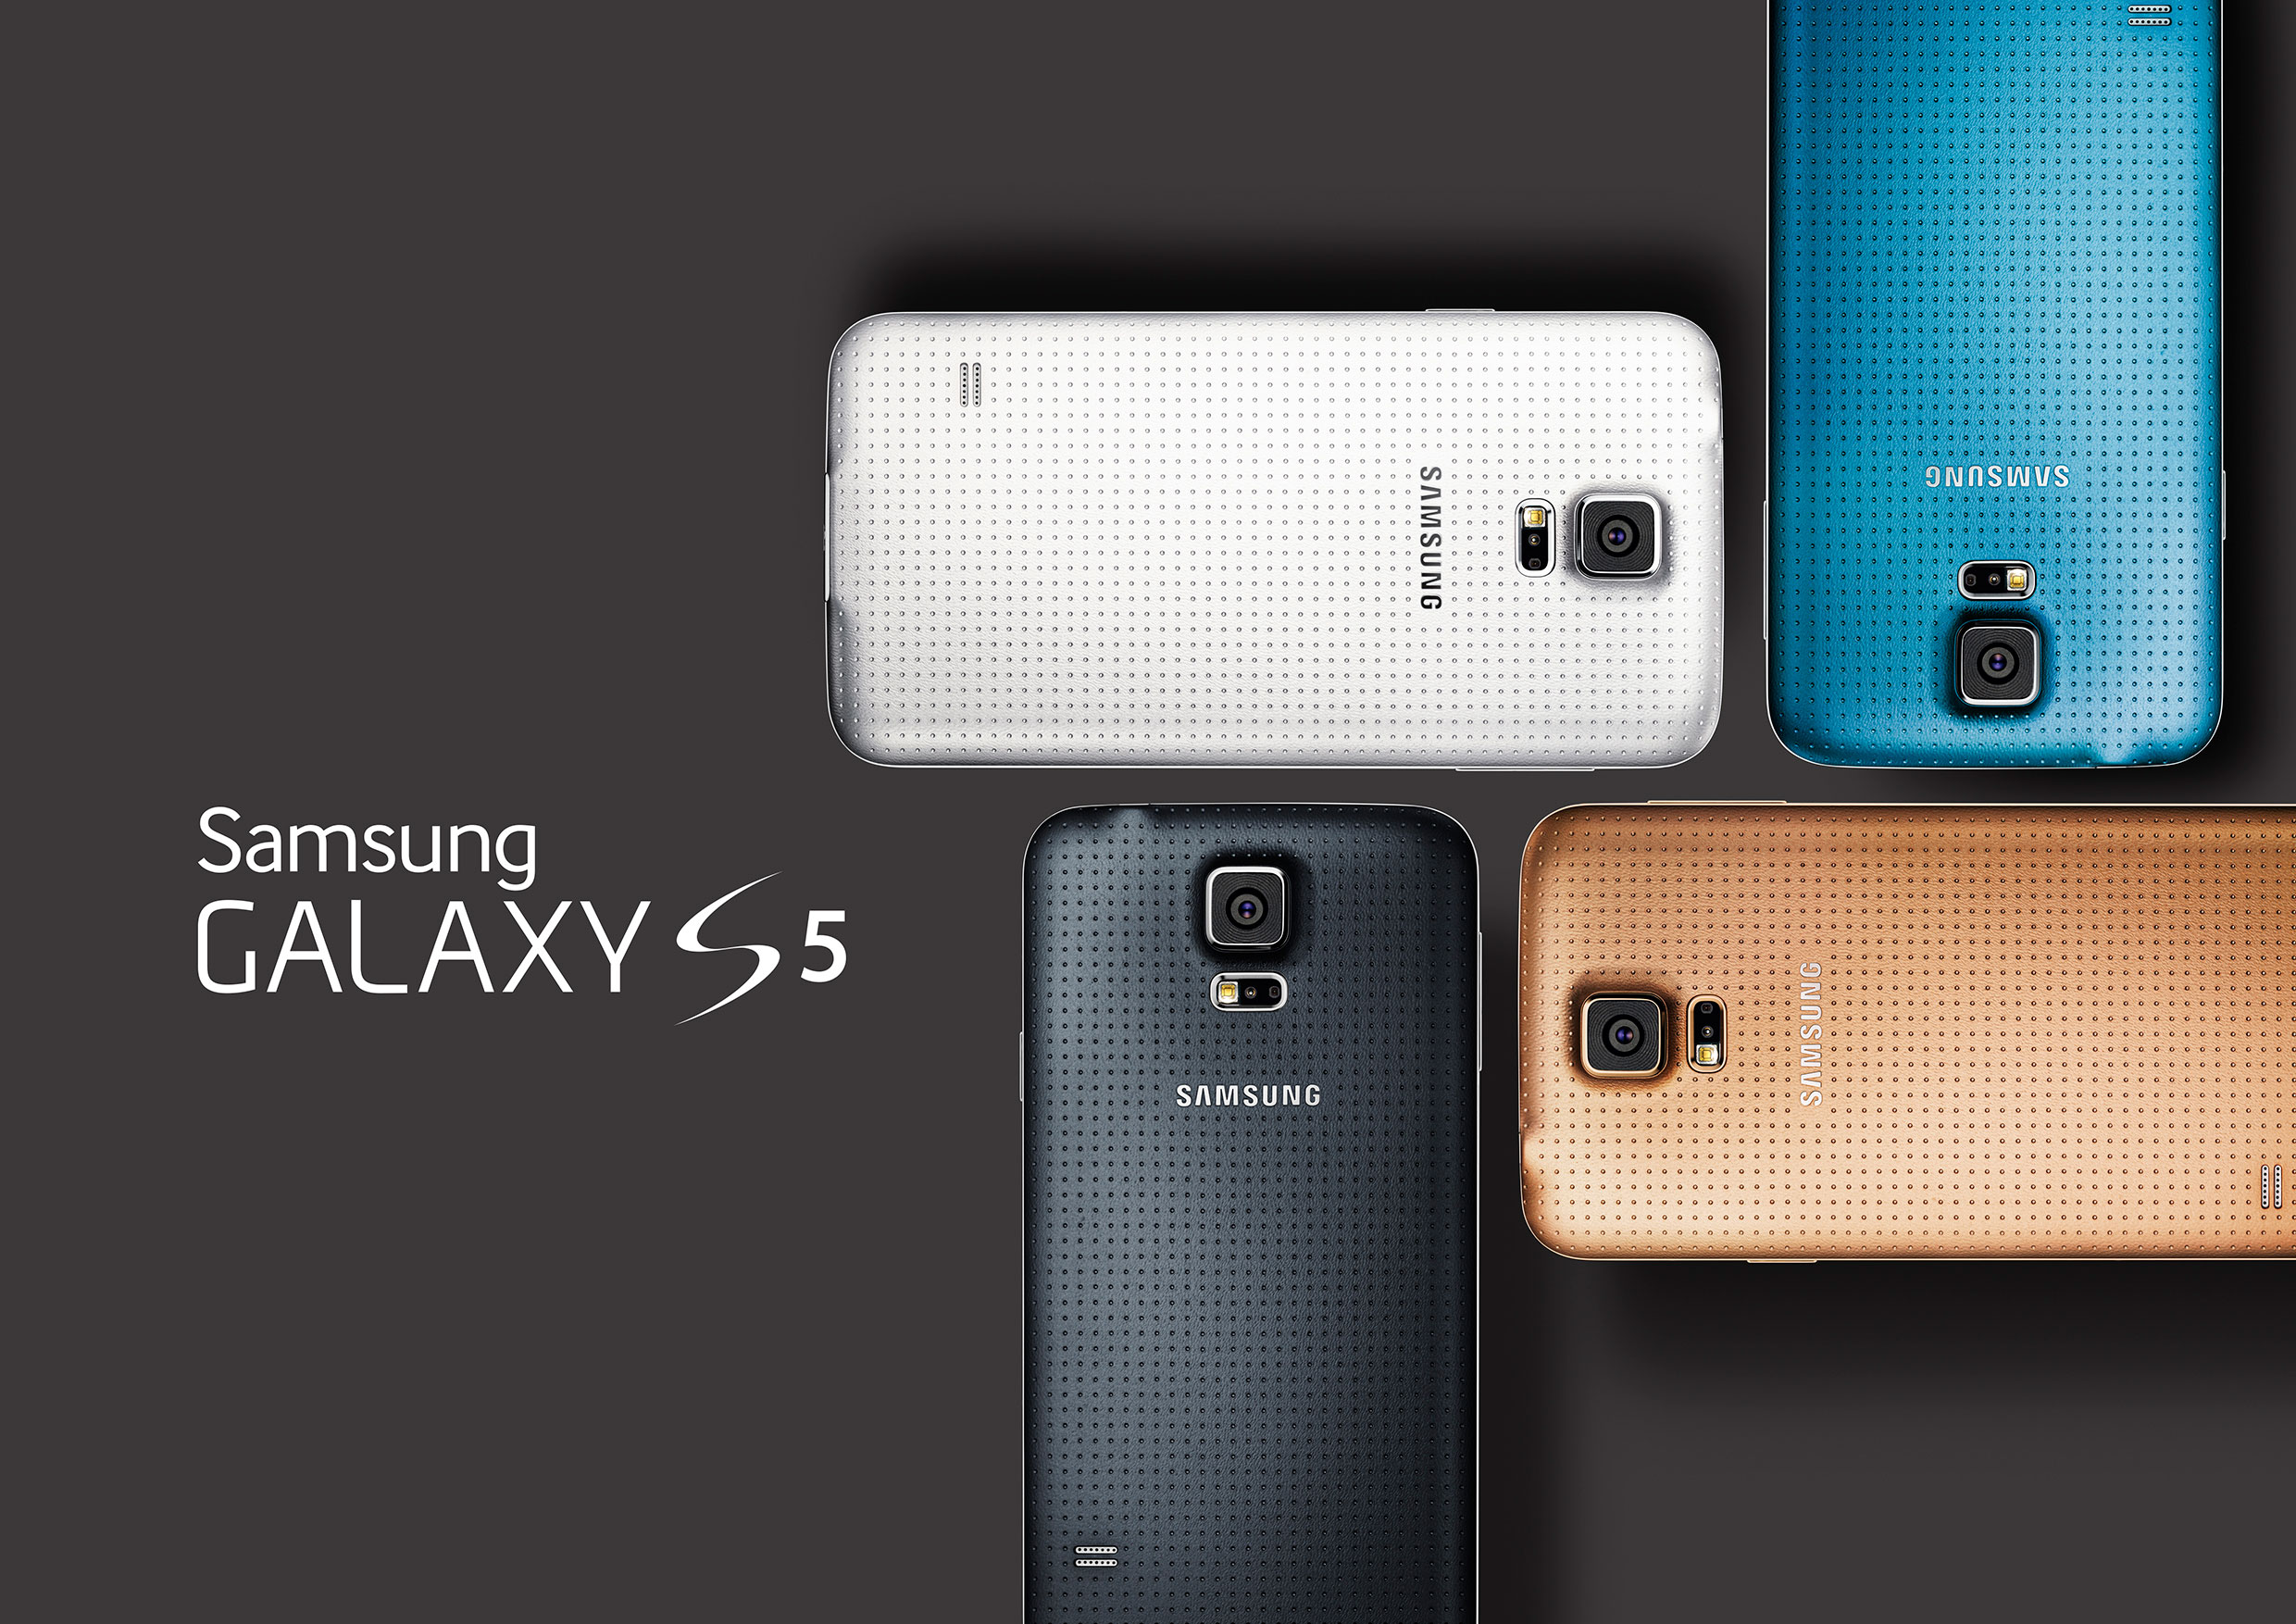 Samsung unveils Samsung Galaxy S5 at Mobile World Congress(MWC) 2014 Barcelona